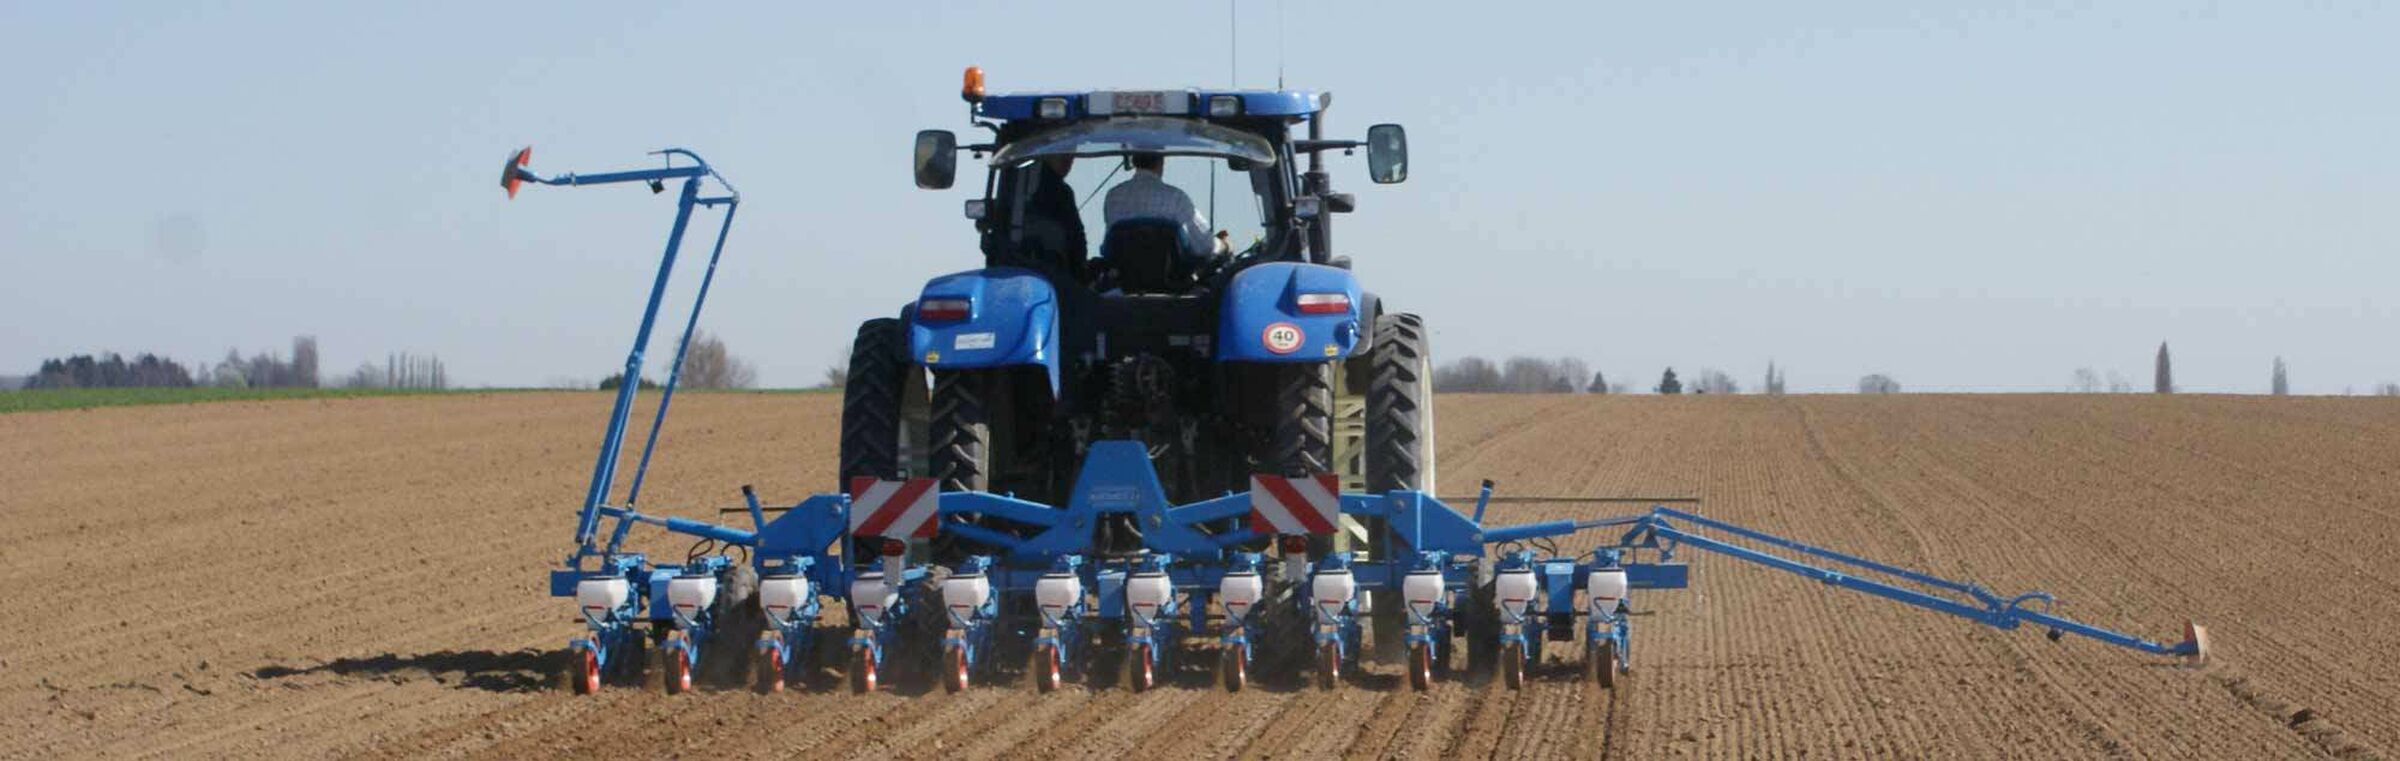 SESVanderHave_Sugar-Beet-Seed_Machine_Drilling-seeds